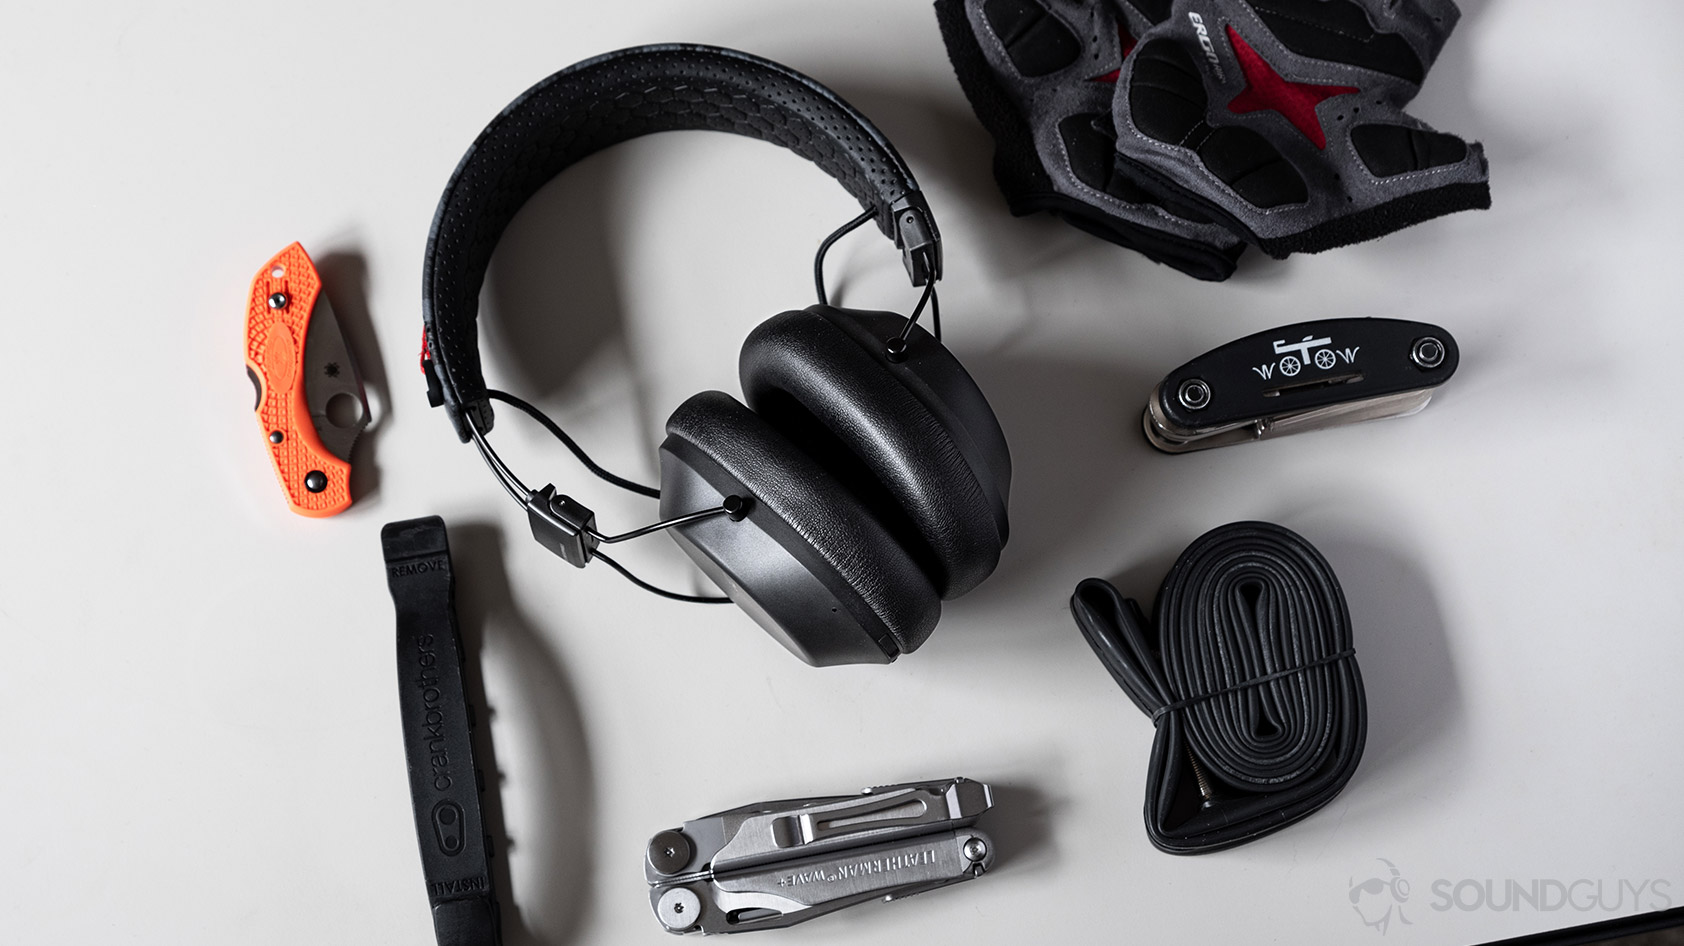 5 Reasons You Should Buy Bluetooth Headphones Soundguys